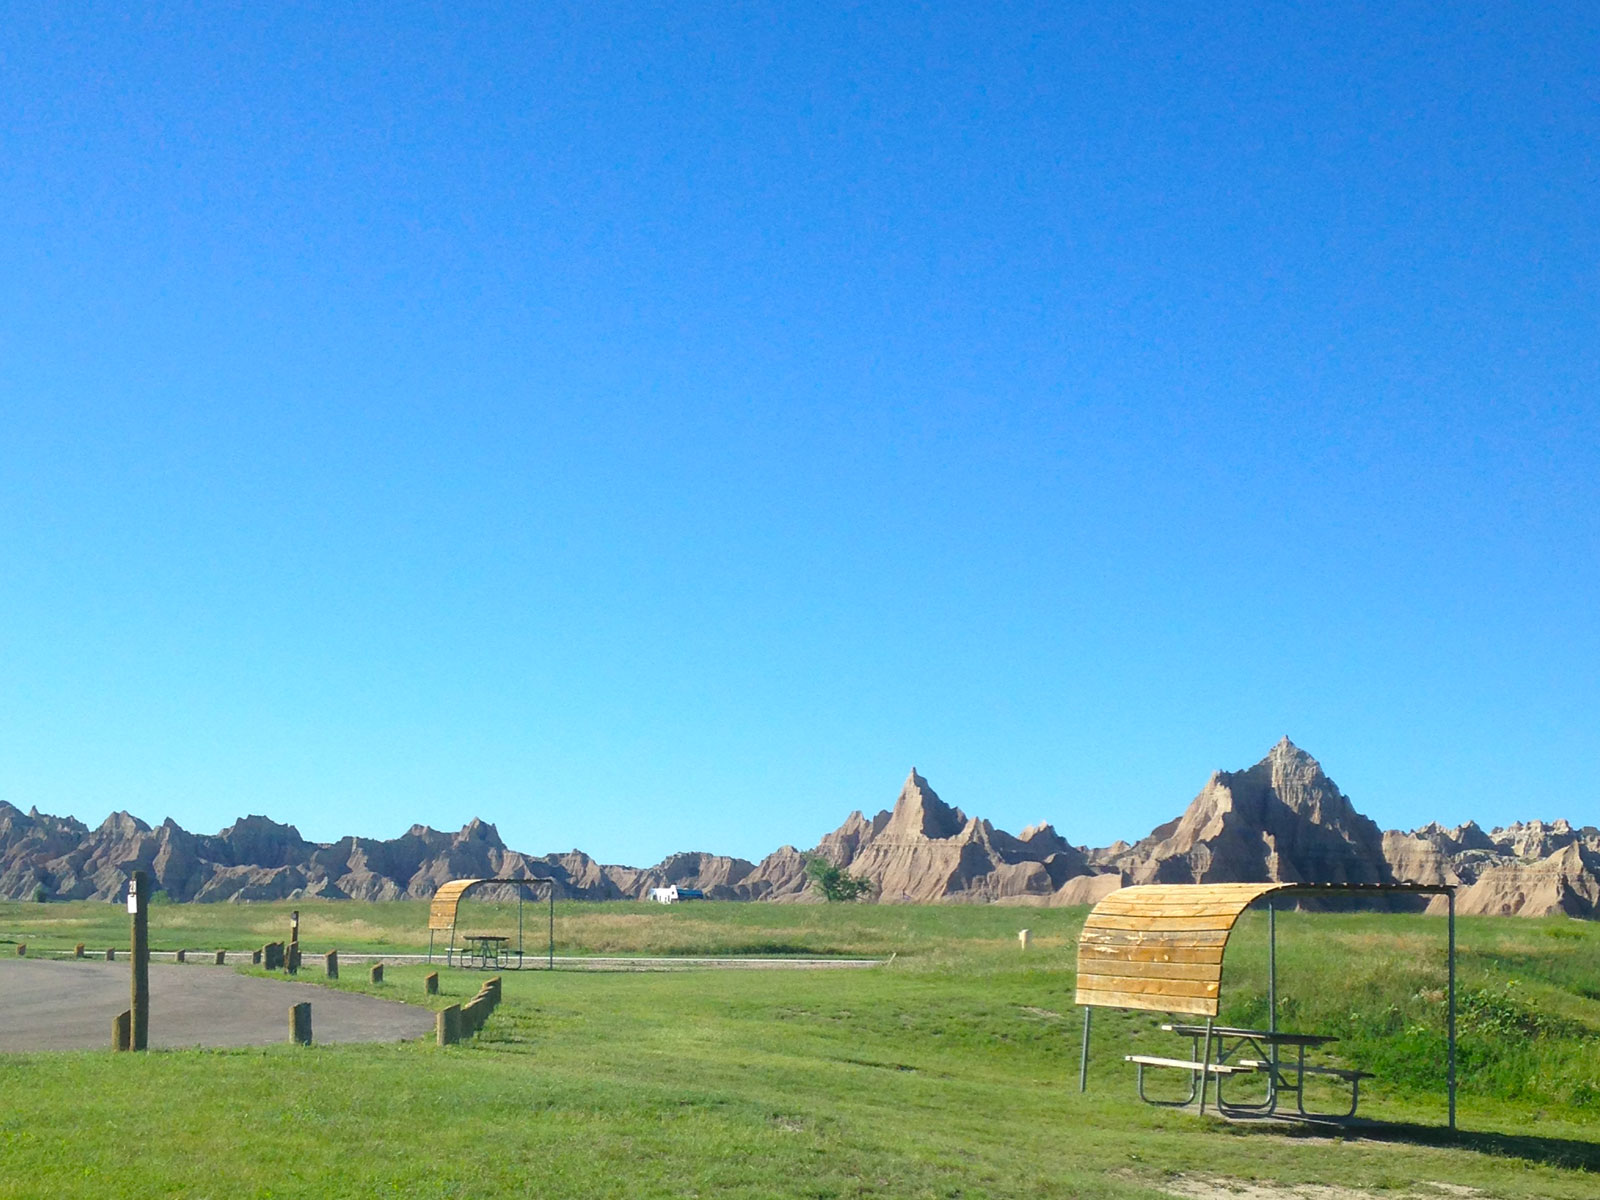 Campsites at Cedar Pass Campground in the Badlands National Park of South Dakota